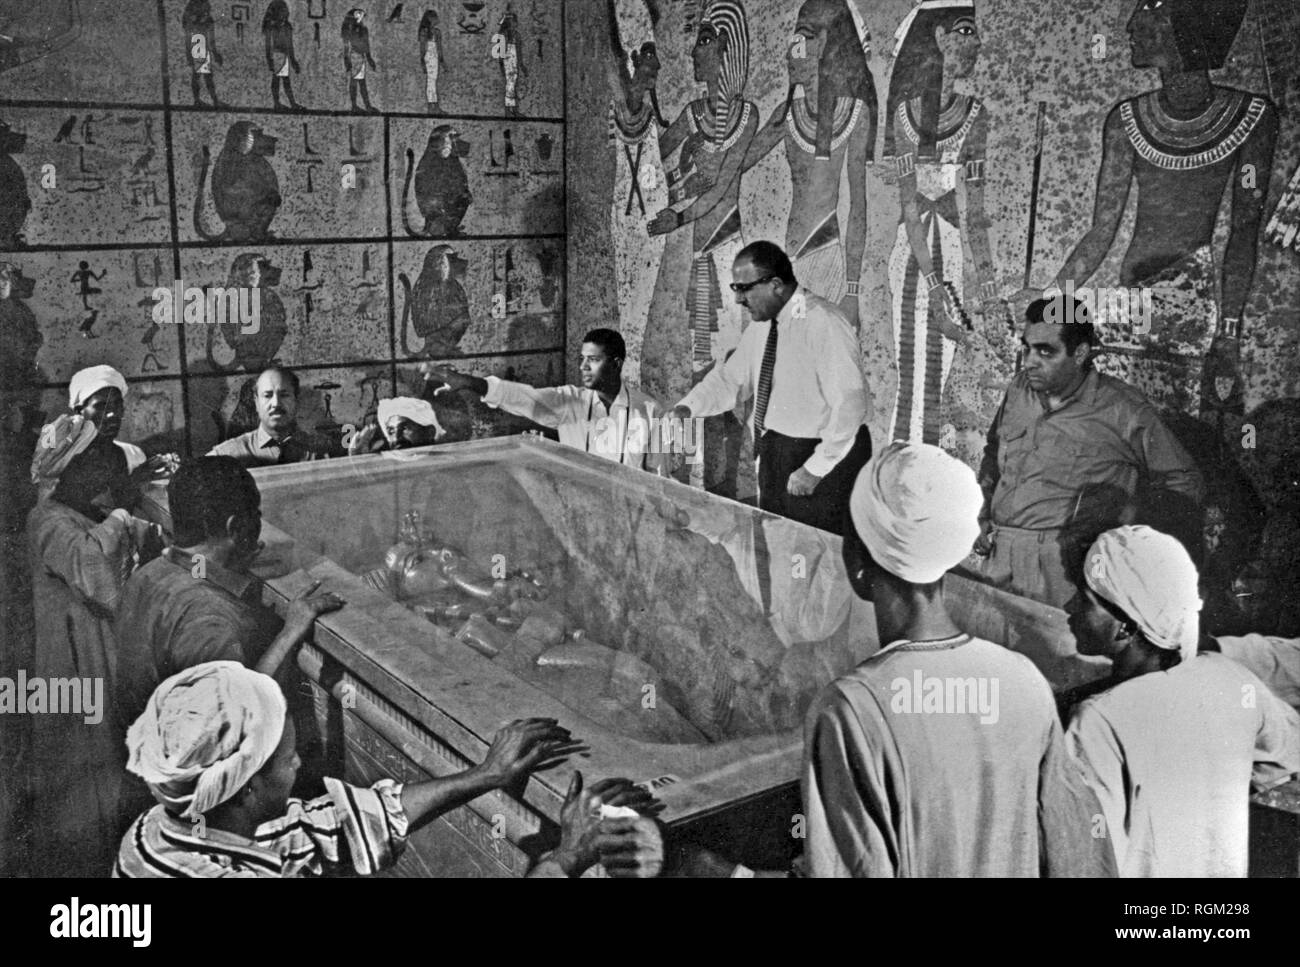 Inside Tutankhamun's tomb in 1922 Egytian experts inside the tomb of Tutankhamun which had been discovered by Howard Carter. Scanned from image material in the archives of Press Portrait Service - (formerly Press Portrait Bureau). - Stock Image